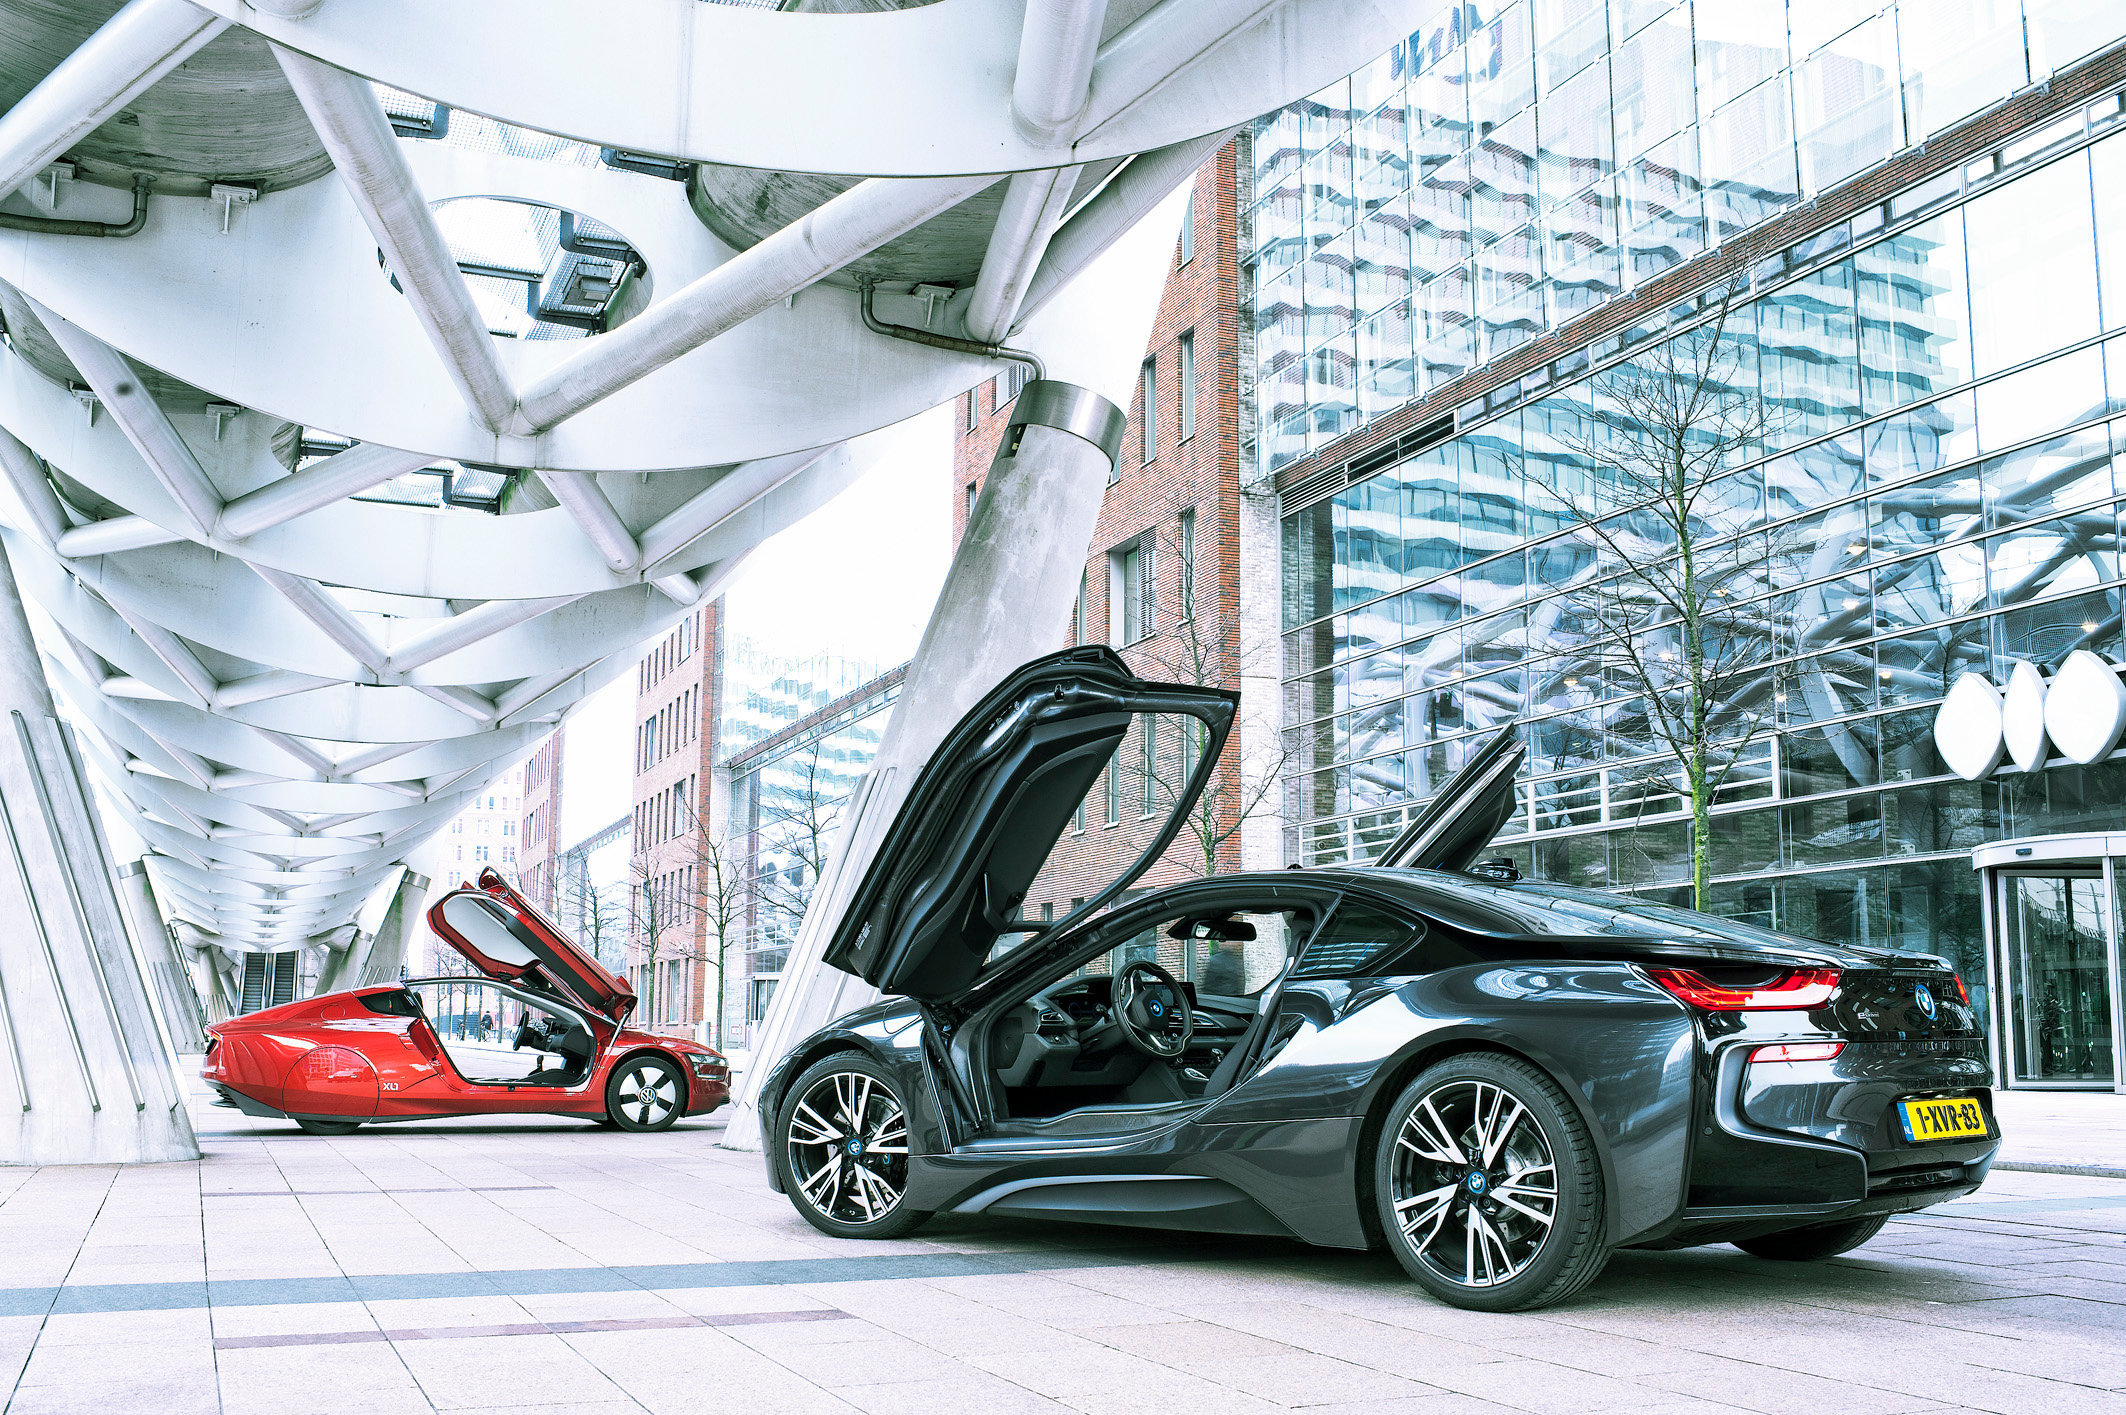 BMW I8 vs VW L1